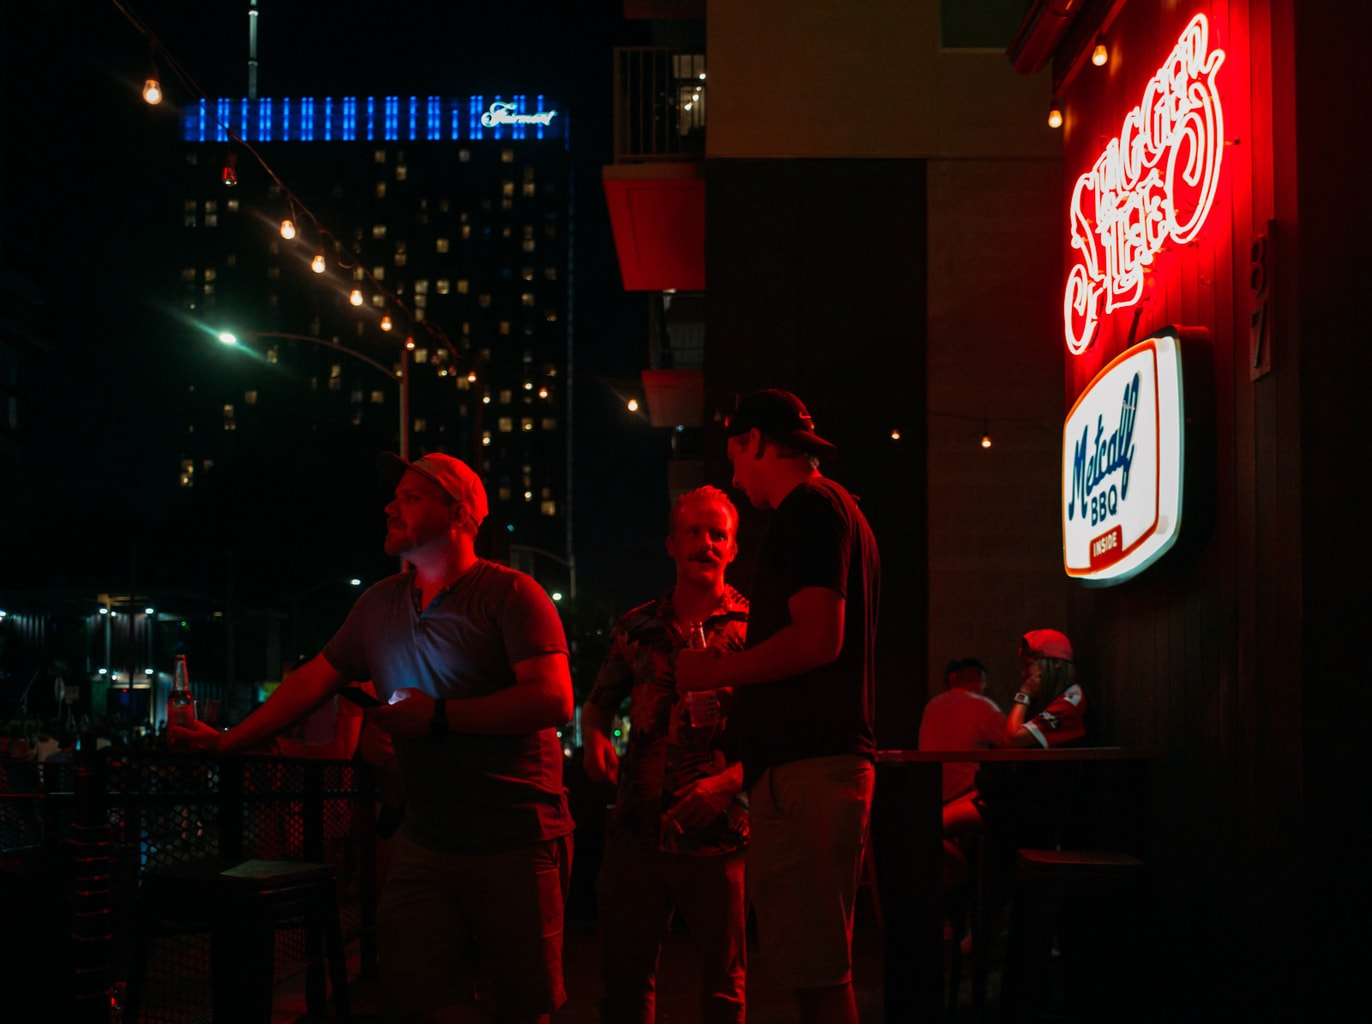 Three men talking below a red neon sign at Stagger Lee bar on Rainey Street